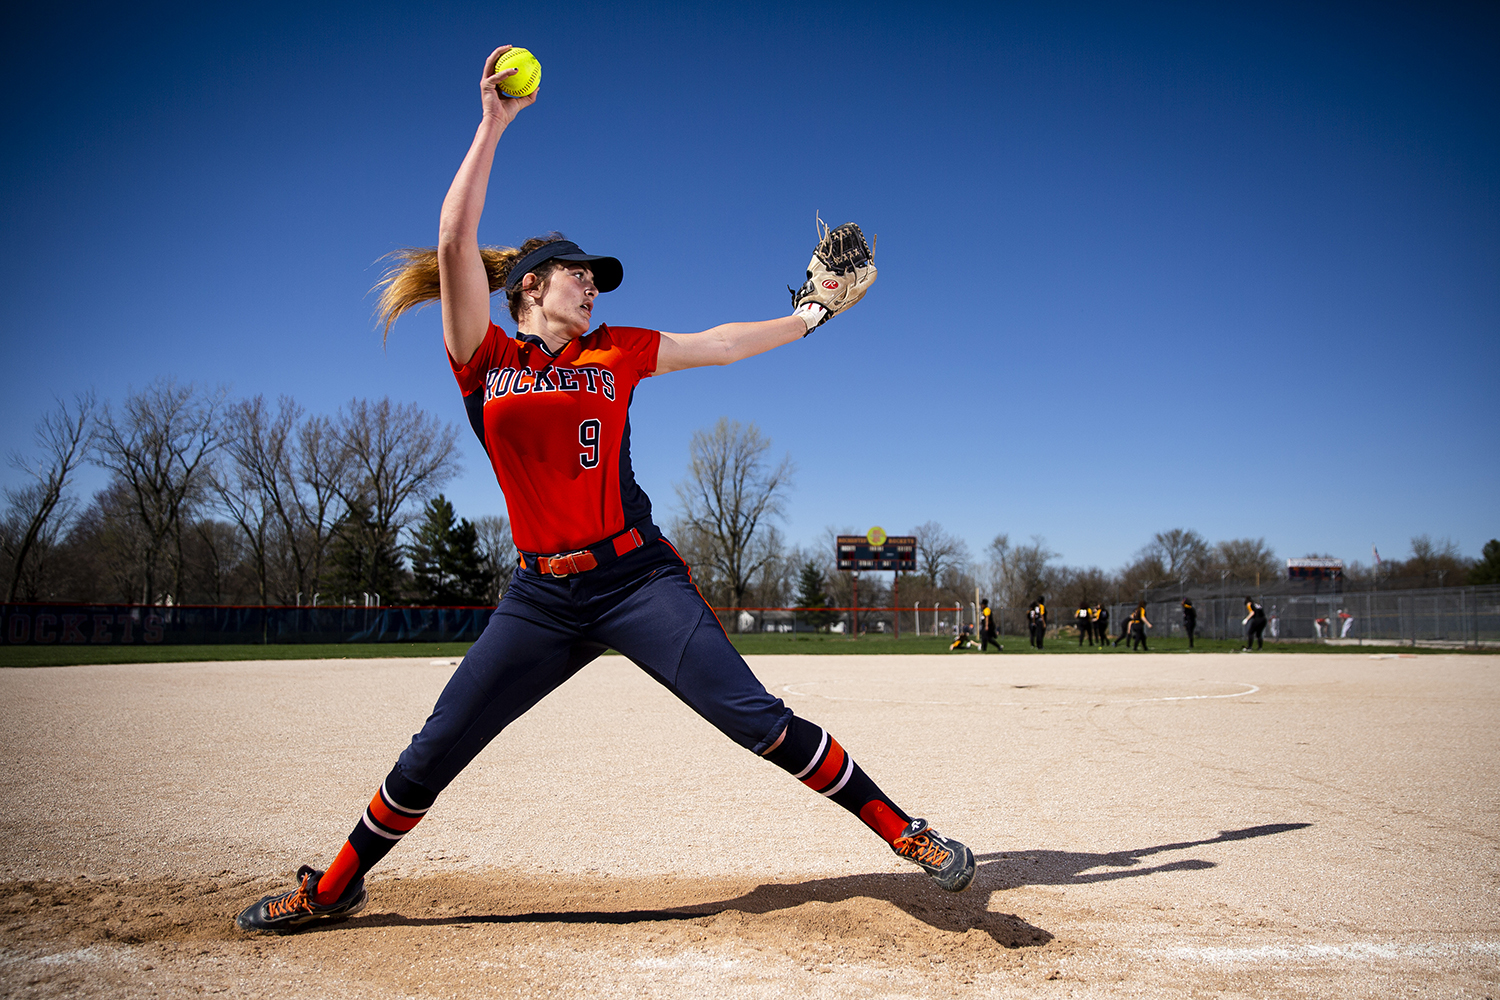 Rochester High School's Reagan Miles, who has committed to the University of Illinois Springfield, recently passed more than 500 career strikeouts. Miles was photographed Tuesday, April 9, 2019 at Rochester HIgh School in Rochester, Ill. [Rich Saal/The State Journal-Register]